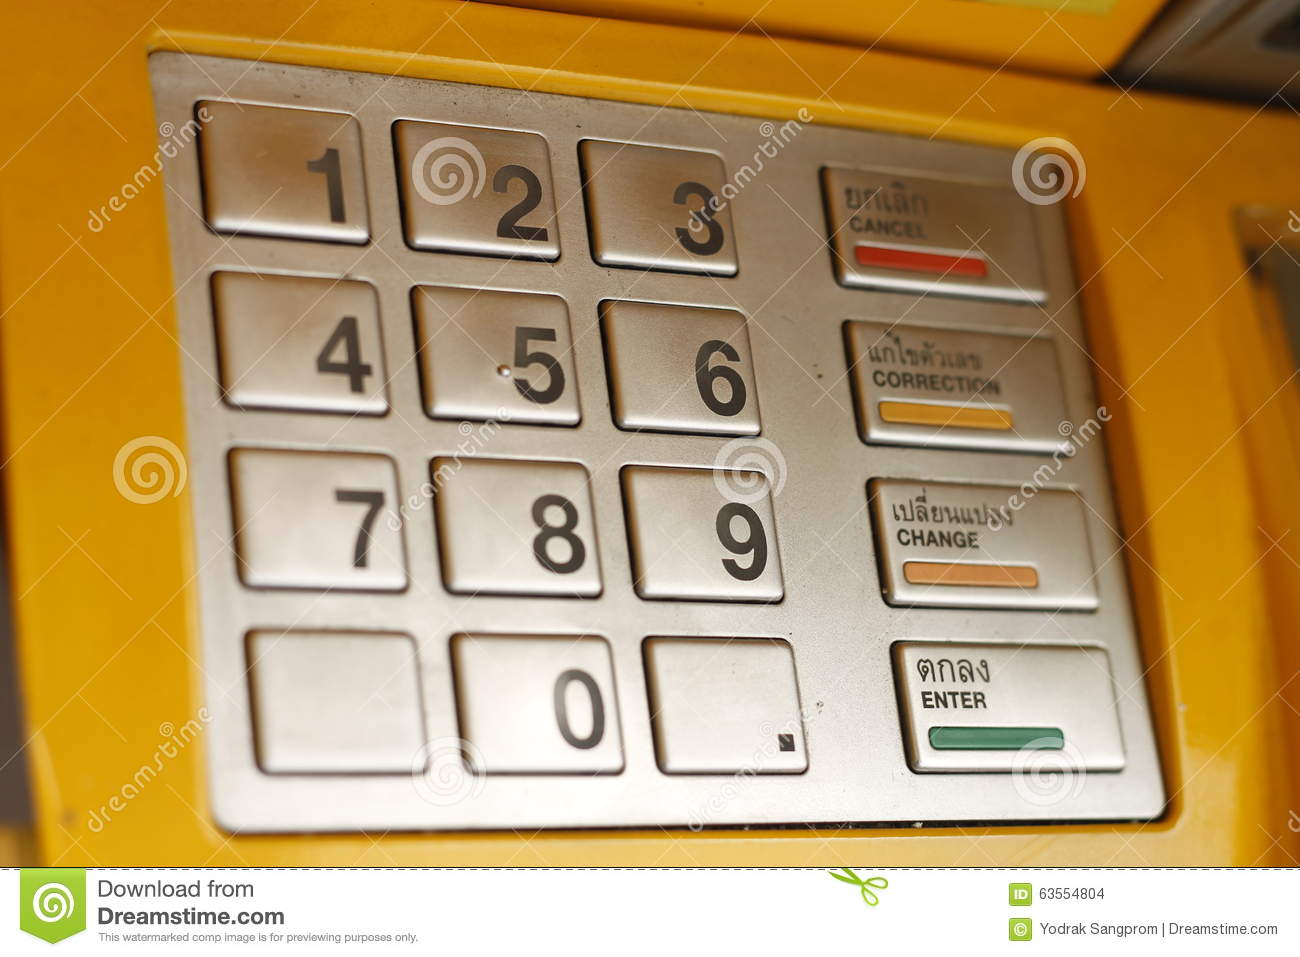 ATM keypad machine detail. Cash point close up